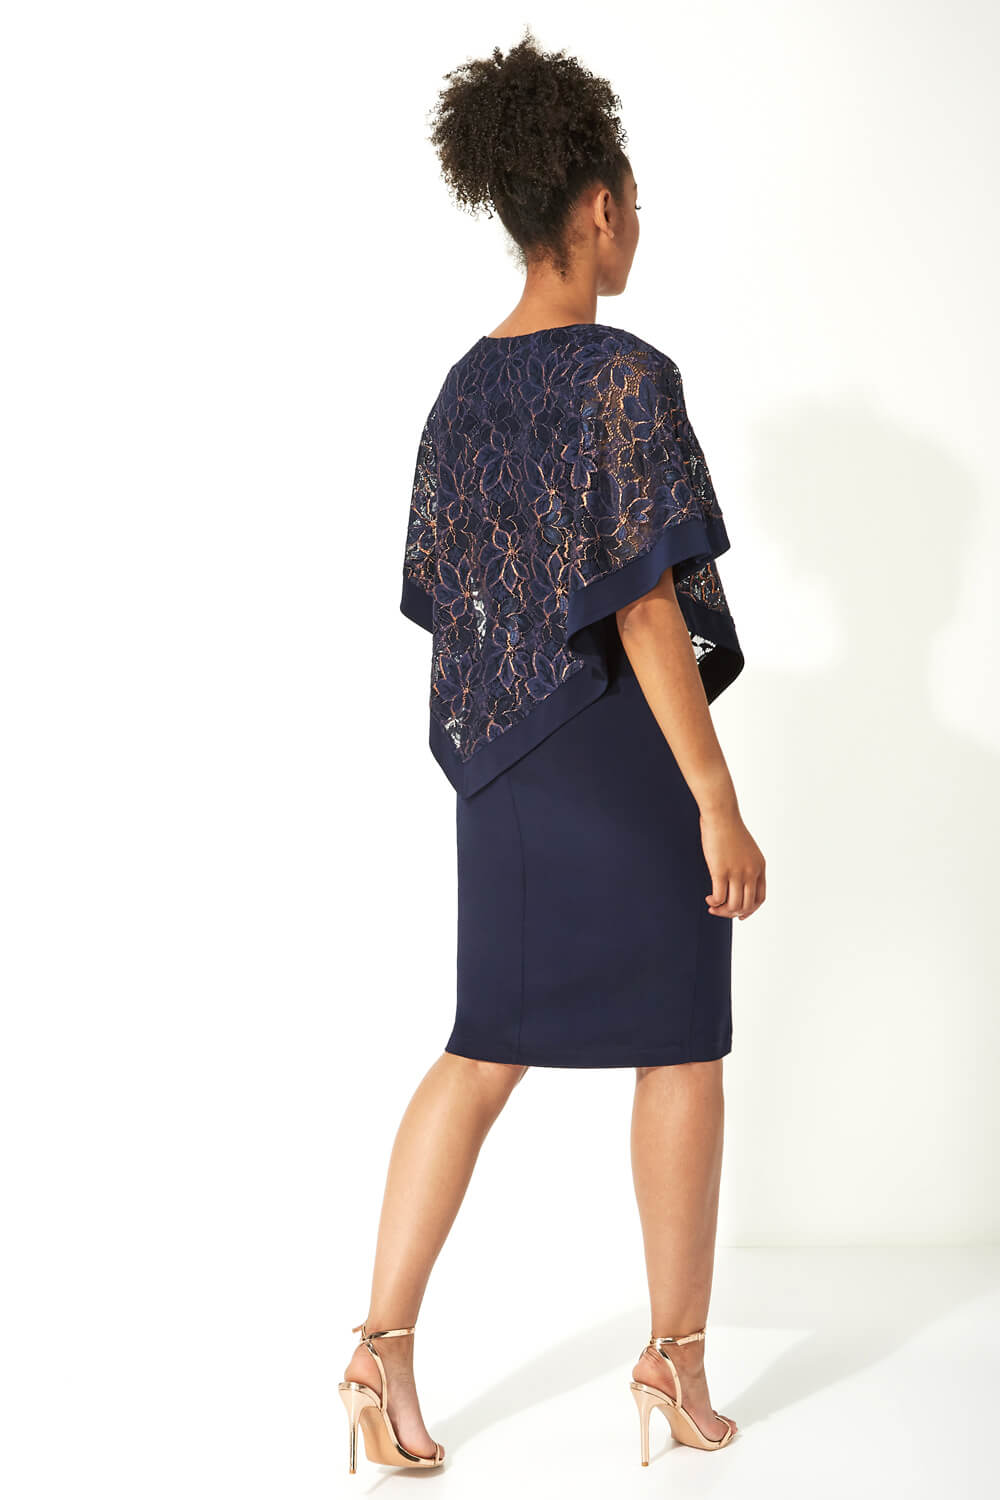 Roman-Originals-Women-039-s-Sequin-Lace-Boat-Neck-Overlay-Knee-Length-Dress thumbnail 26